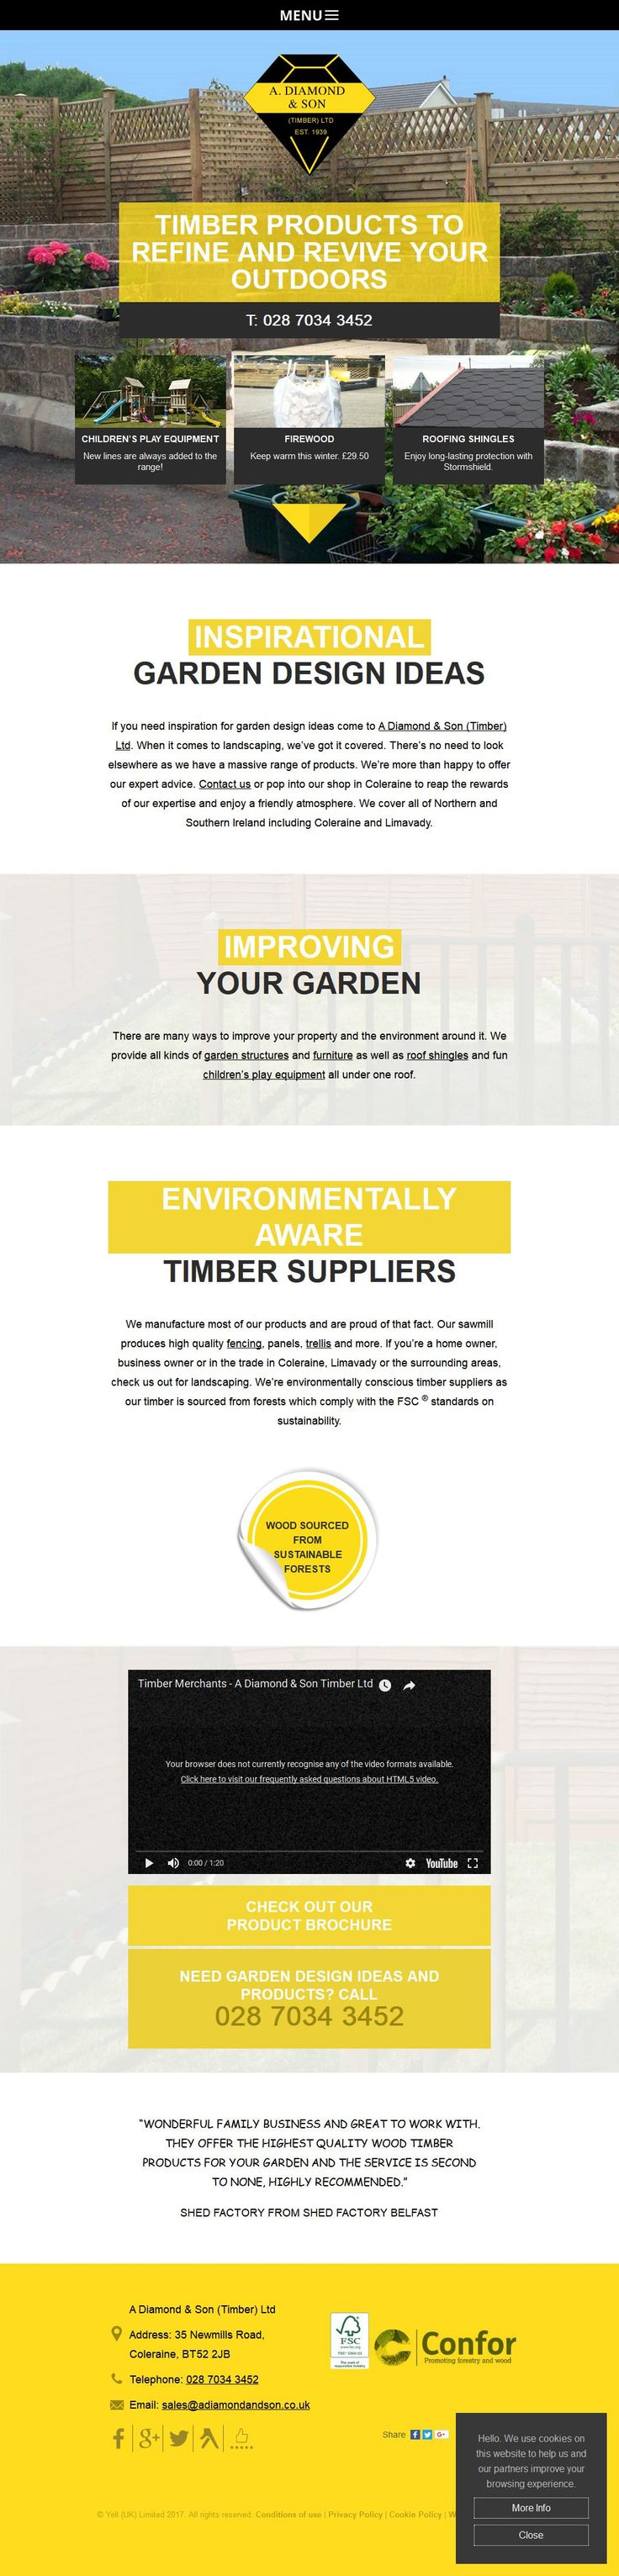 A Diamond & Son (Timber) Ltd Timber Merchants Importers & Agents 35 New Mills Road   Coleraine County Londonderry BT52 2JB   To get more infomration about A Diamond & Son (Timber) Ltd, Location Map, Phone numbers, Email, Website please visit http://www.HaiUK.co.uk